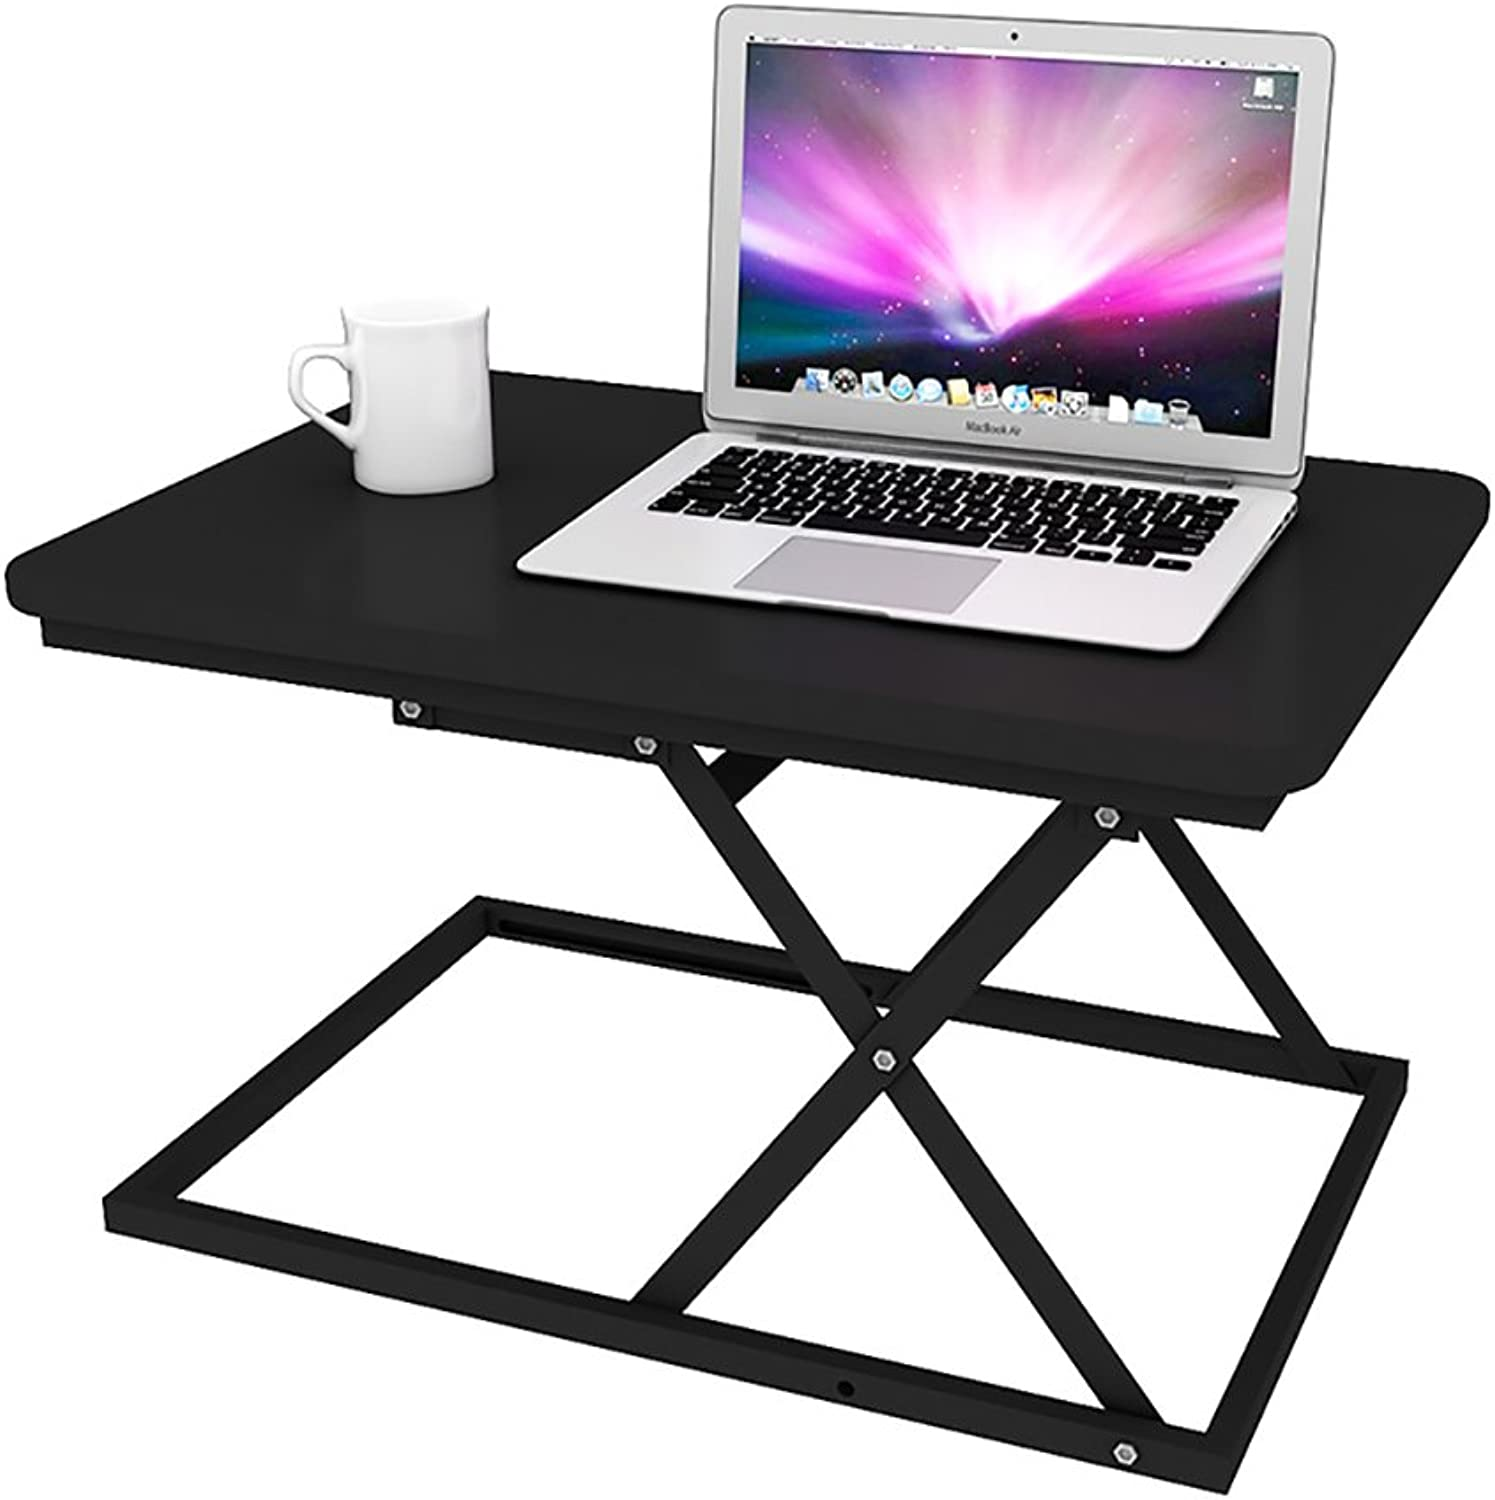 KXBYMXSimple Folding Table Lifting Table Folding Standing Mobile Office Computer Desk